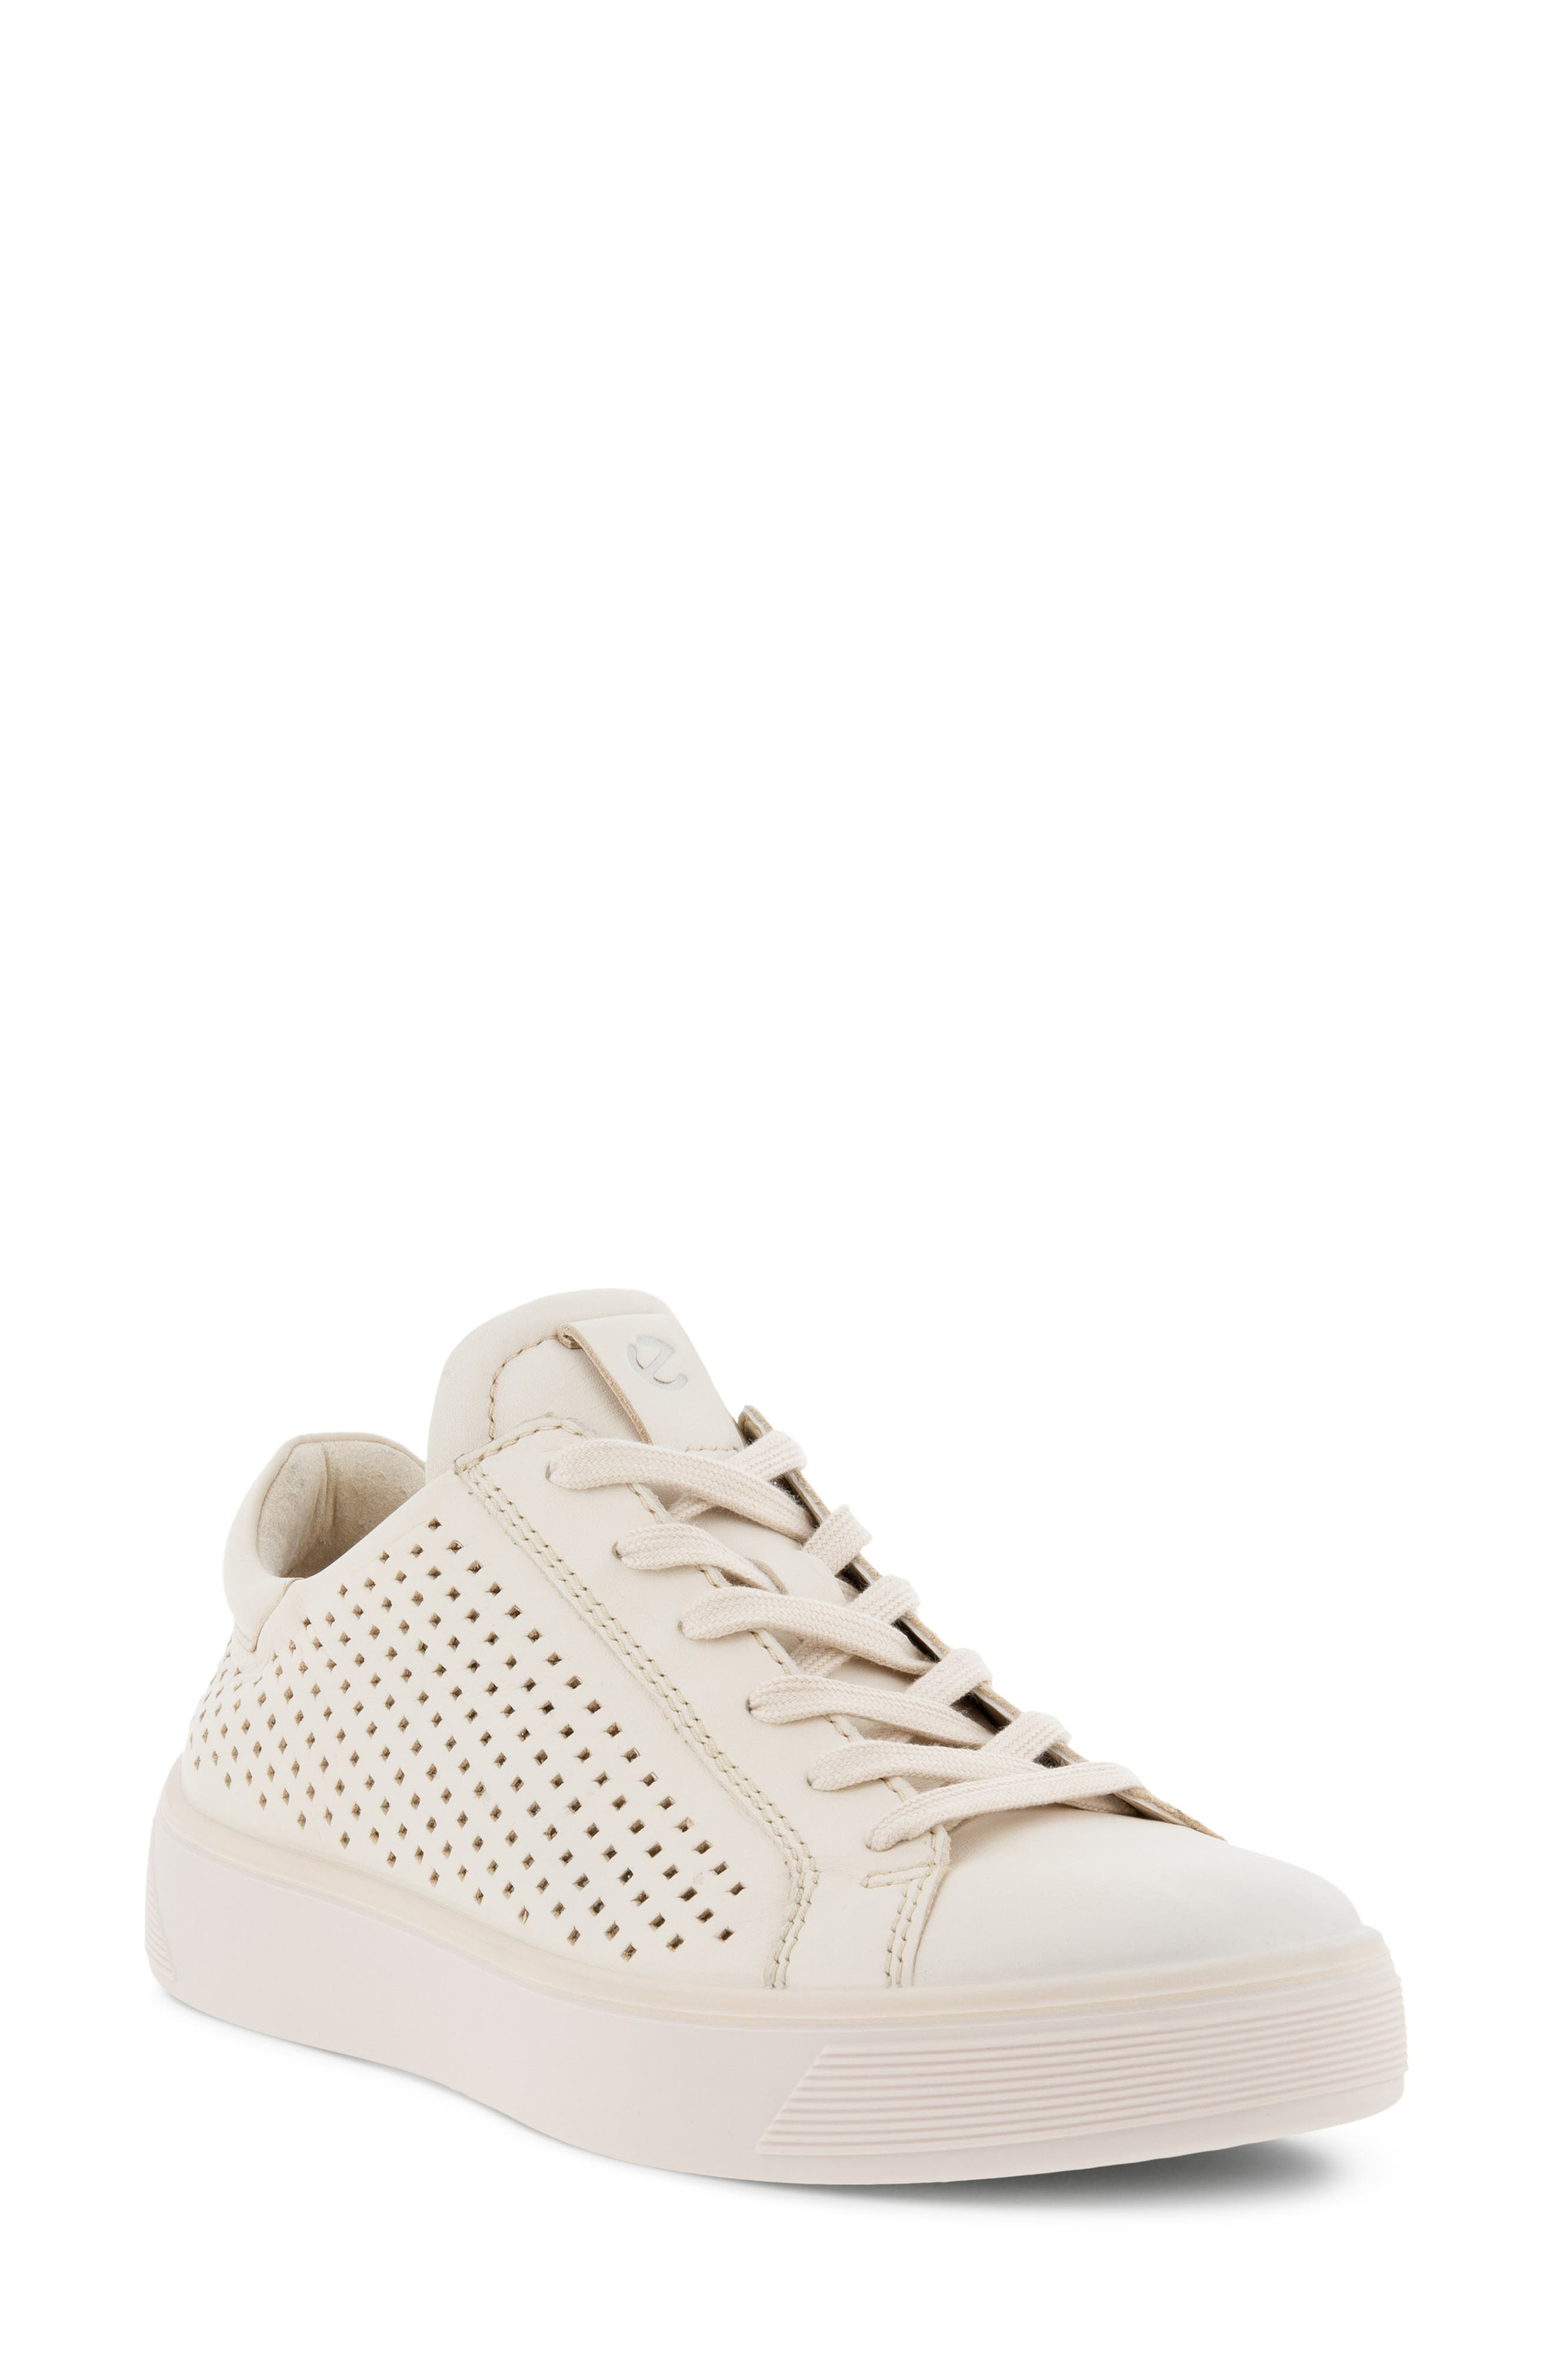 Women's Ecco Street Tray Perforated Sneaker